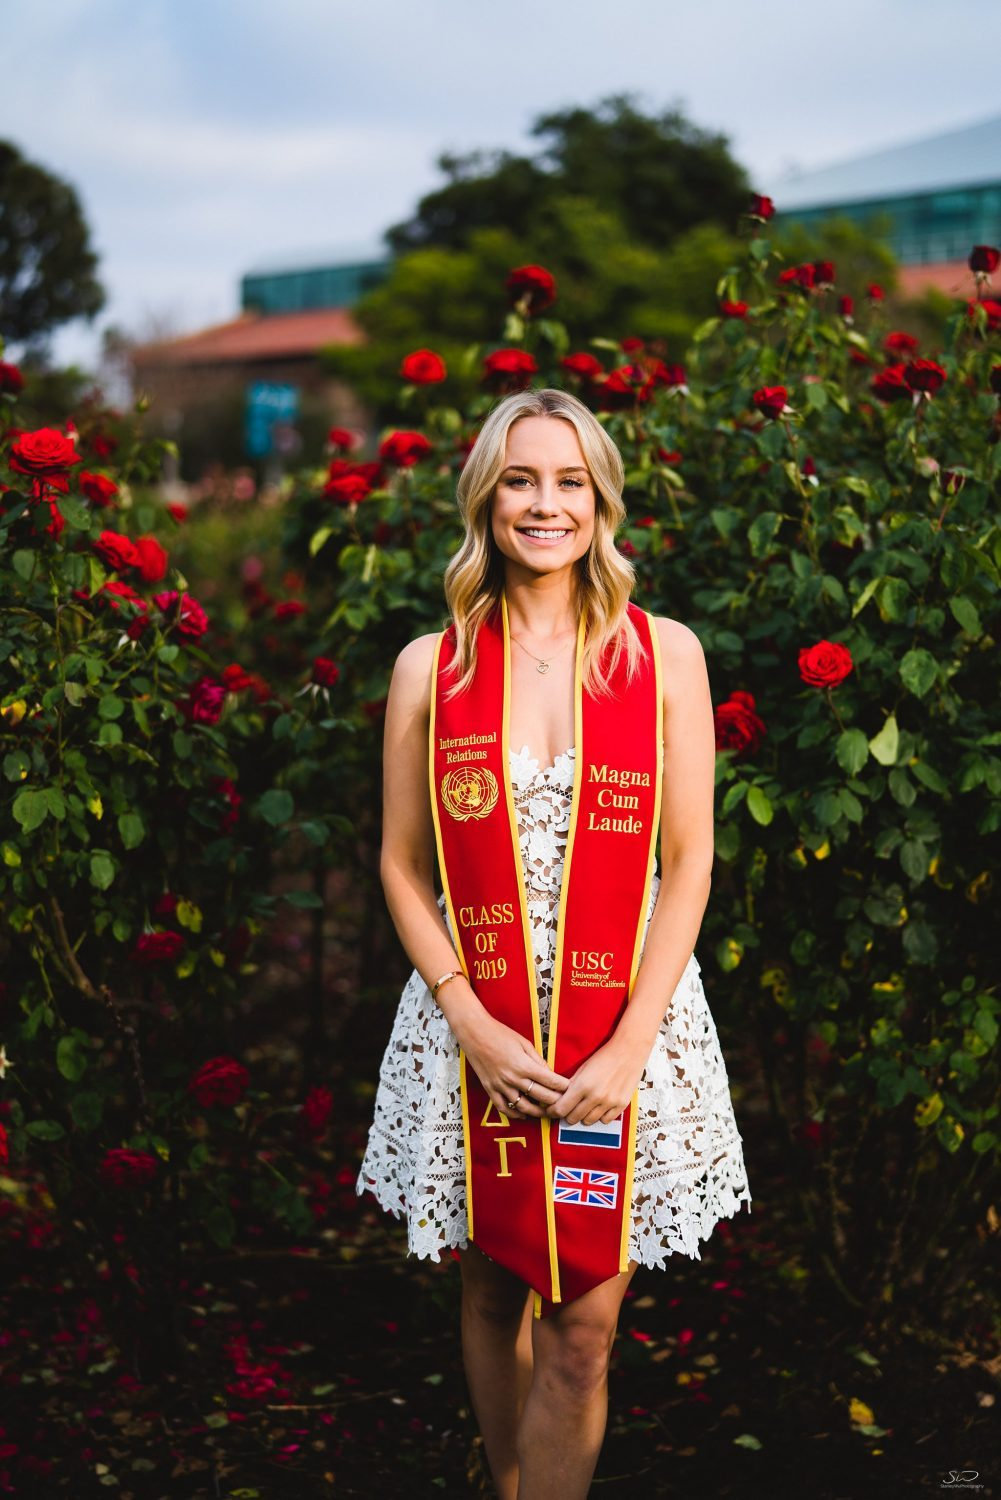 los angeles senior graduation portrait sorority usc